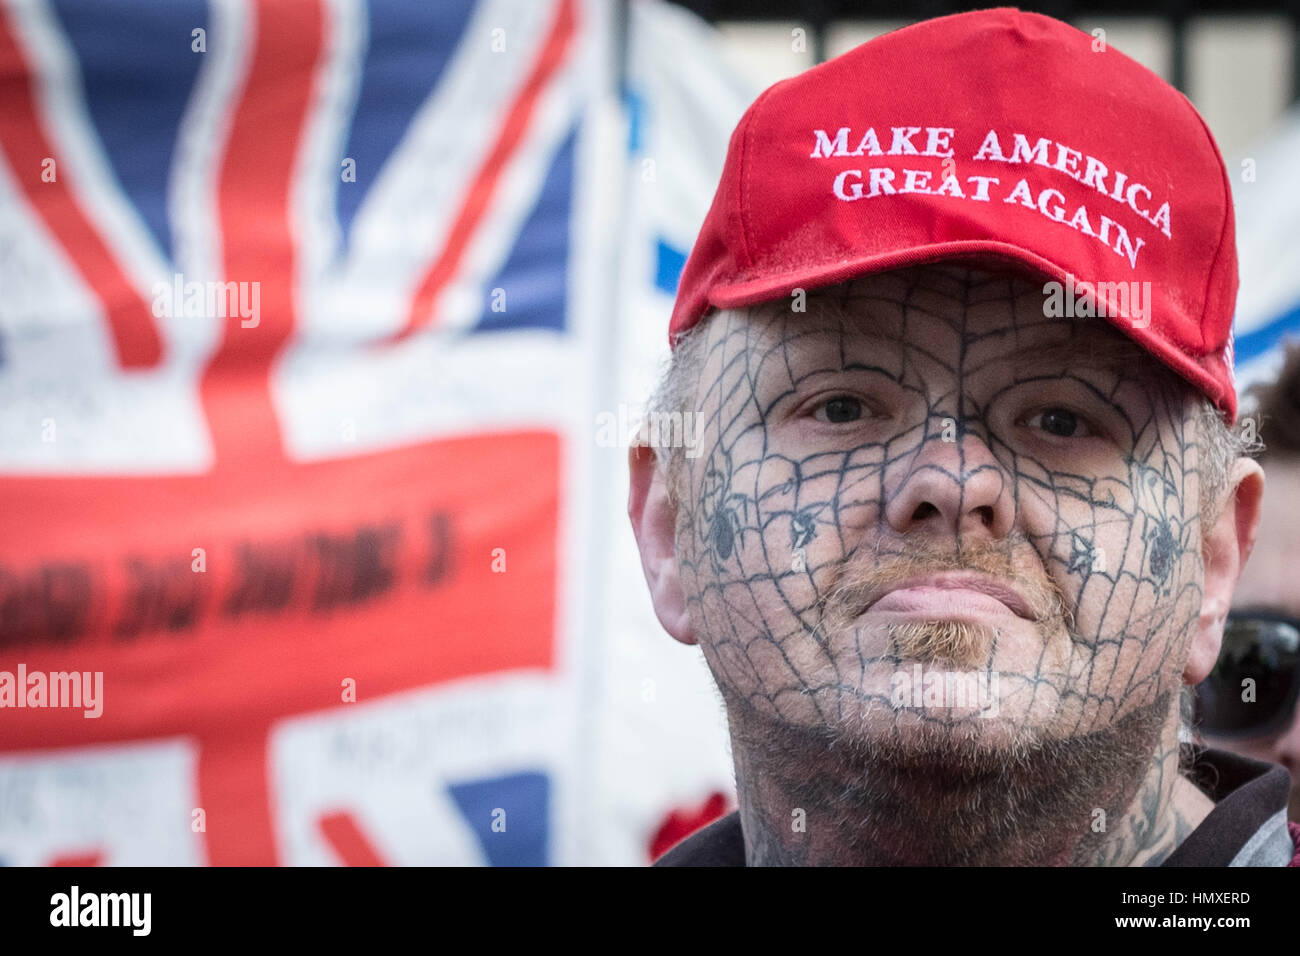 London, UK. 6th February, 2017. A Trump supporter joins the pro-Israeli supporters welcoming Prime Minister of Israel - Stock Image